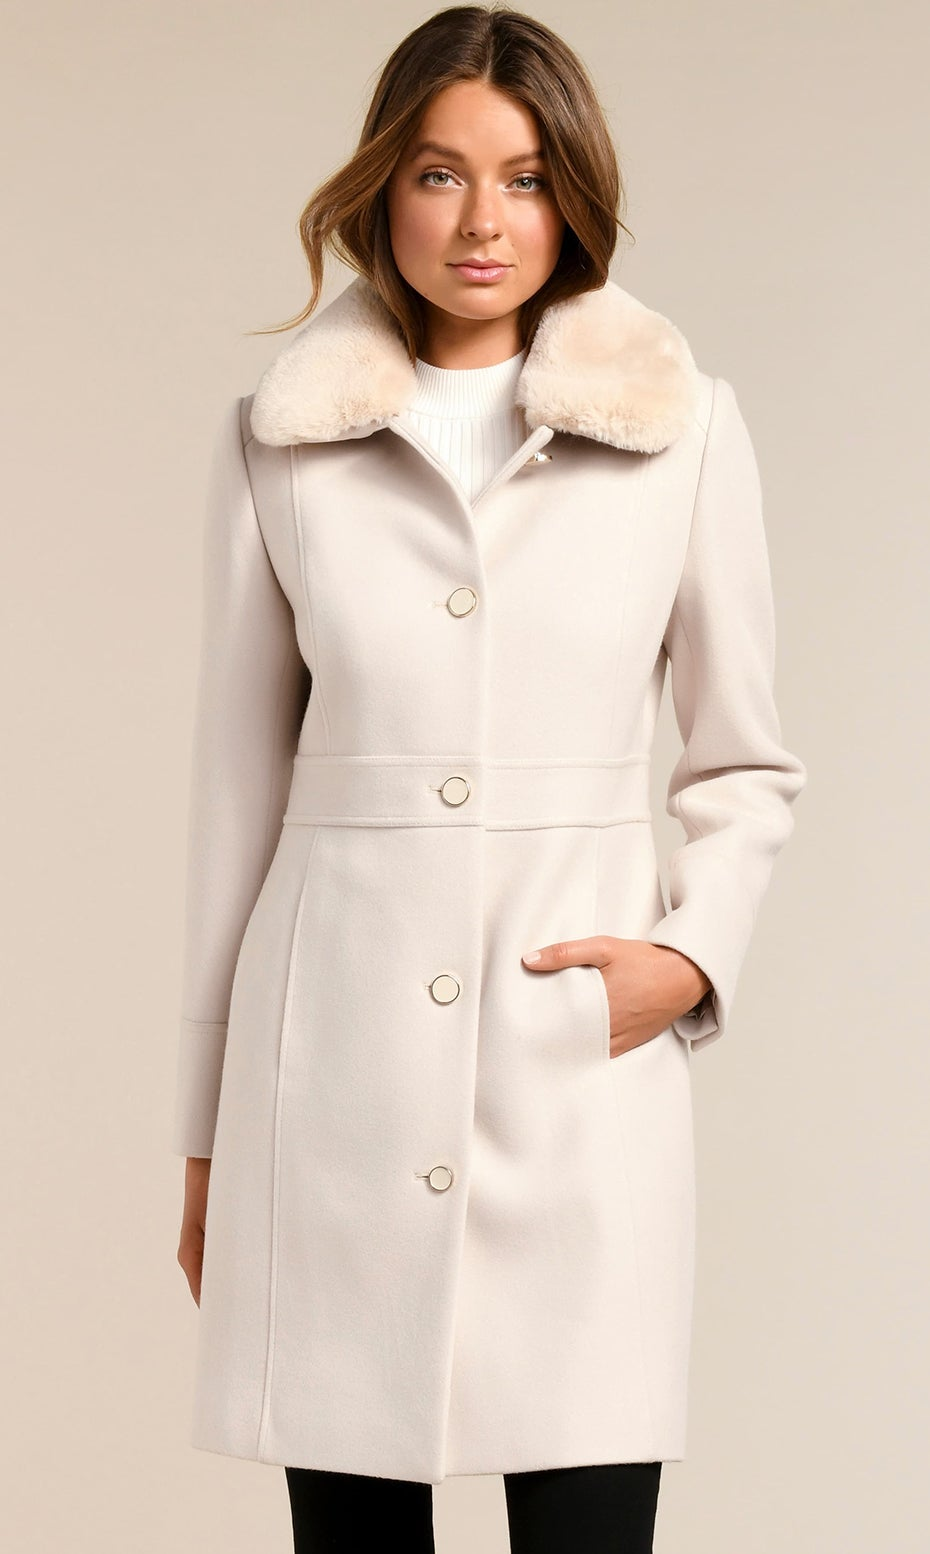 Women's Jackets Coats